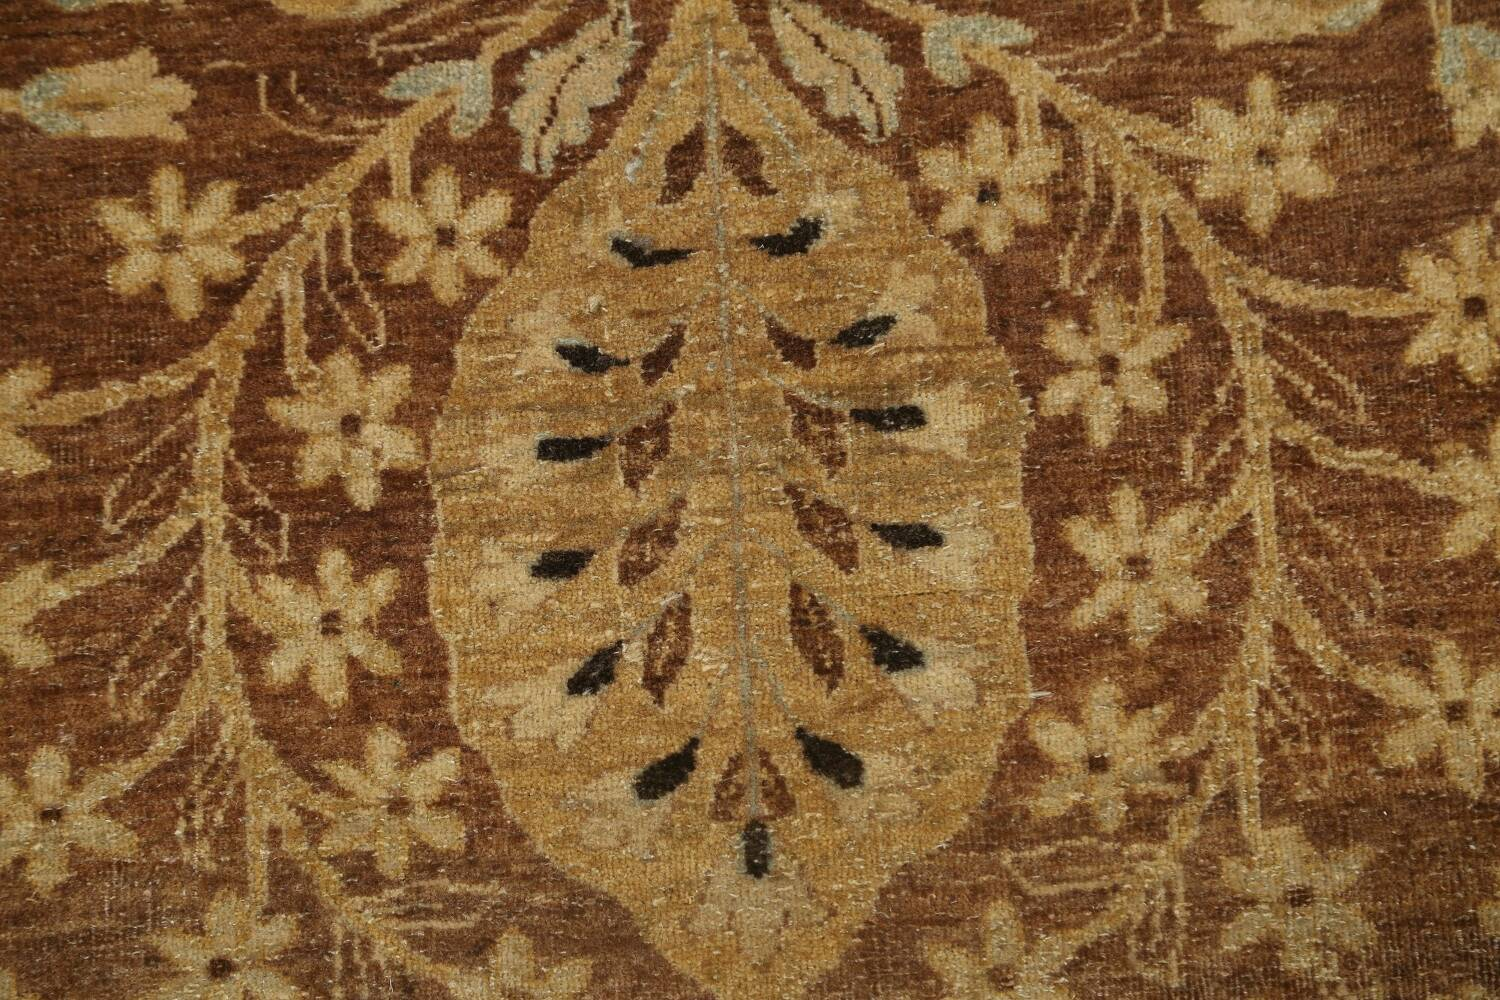 100% Vegetable Dye Floral Kashan Oriental Area Rug 9x12 image 9